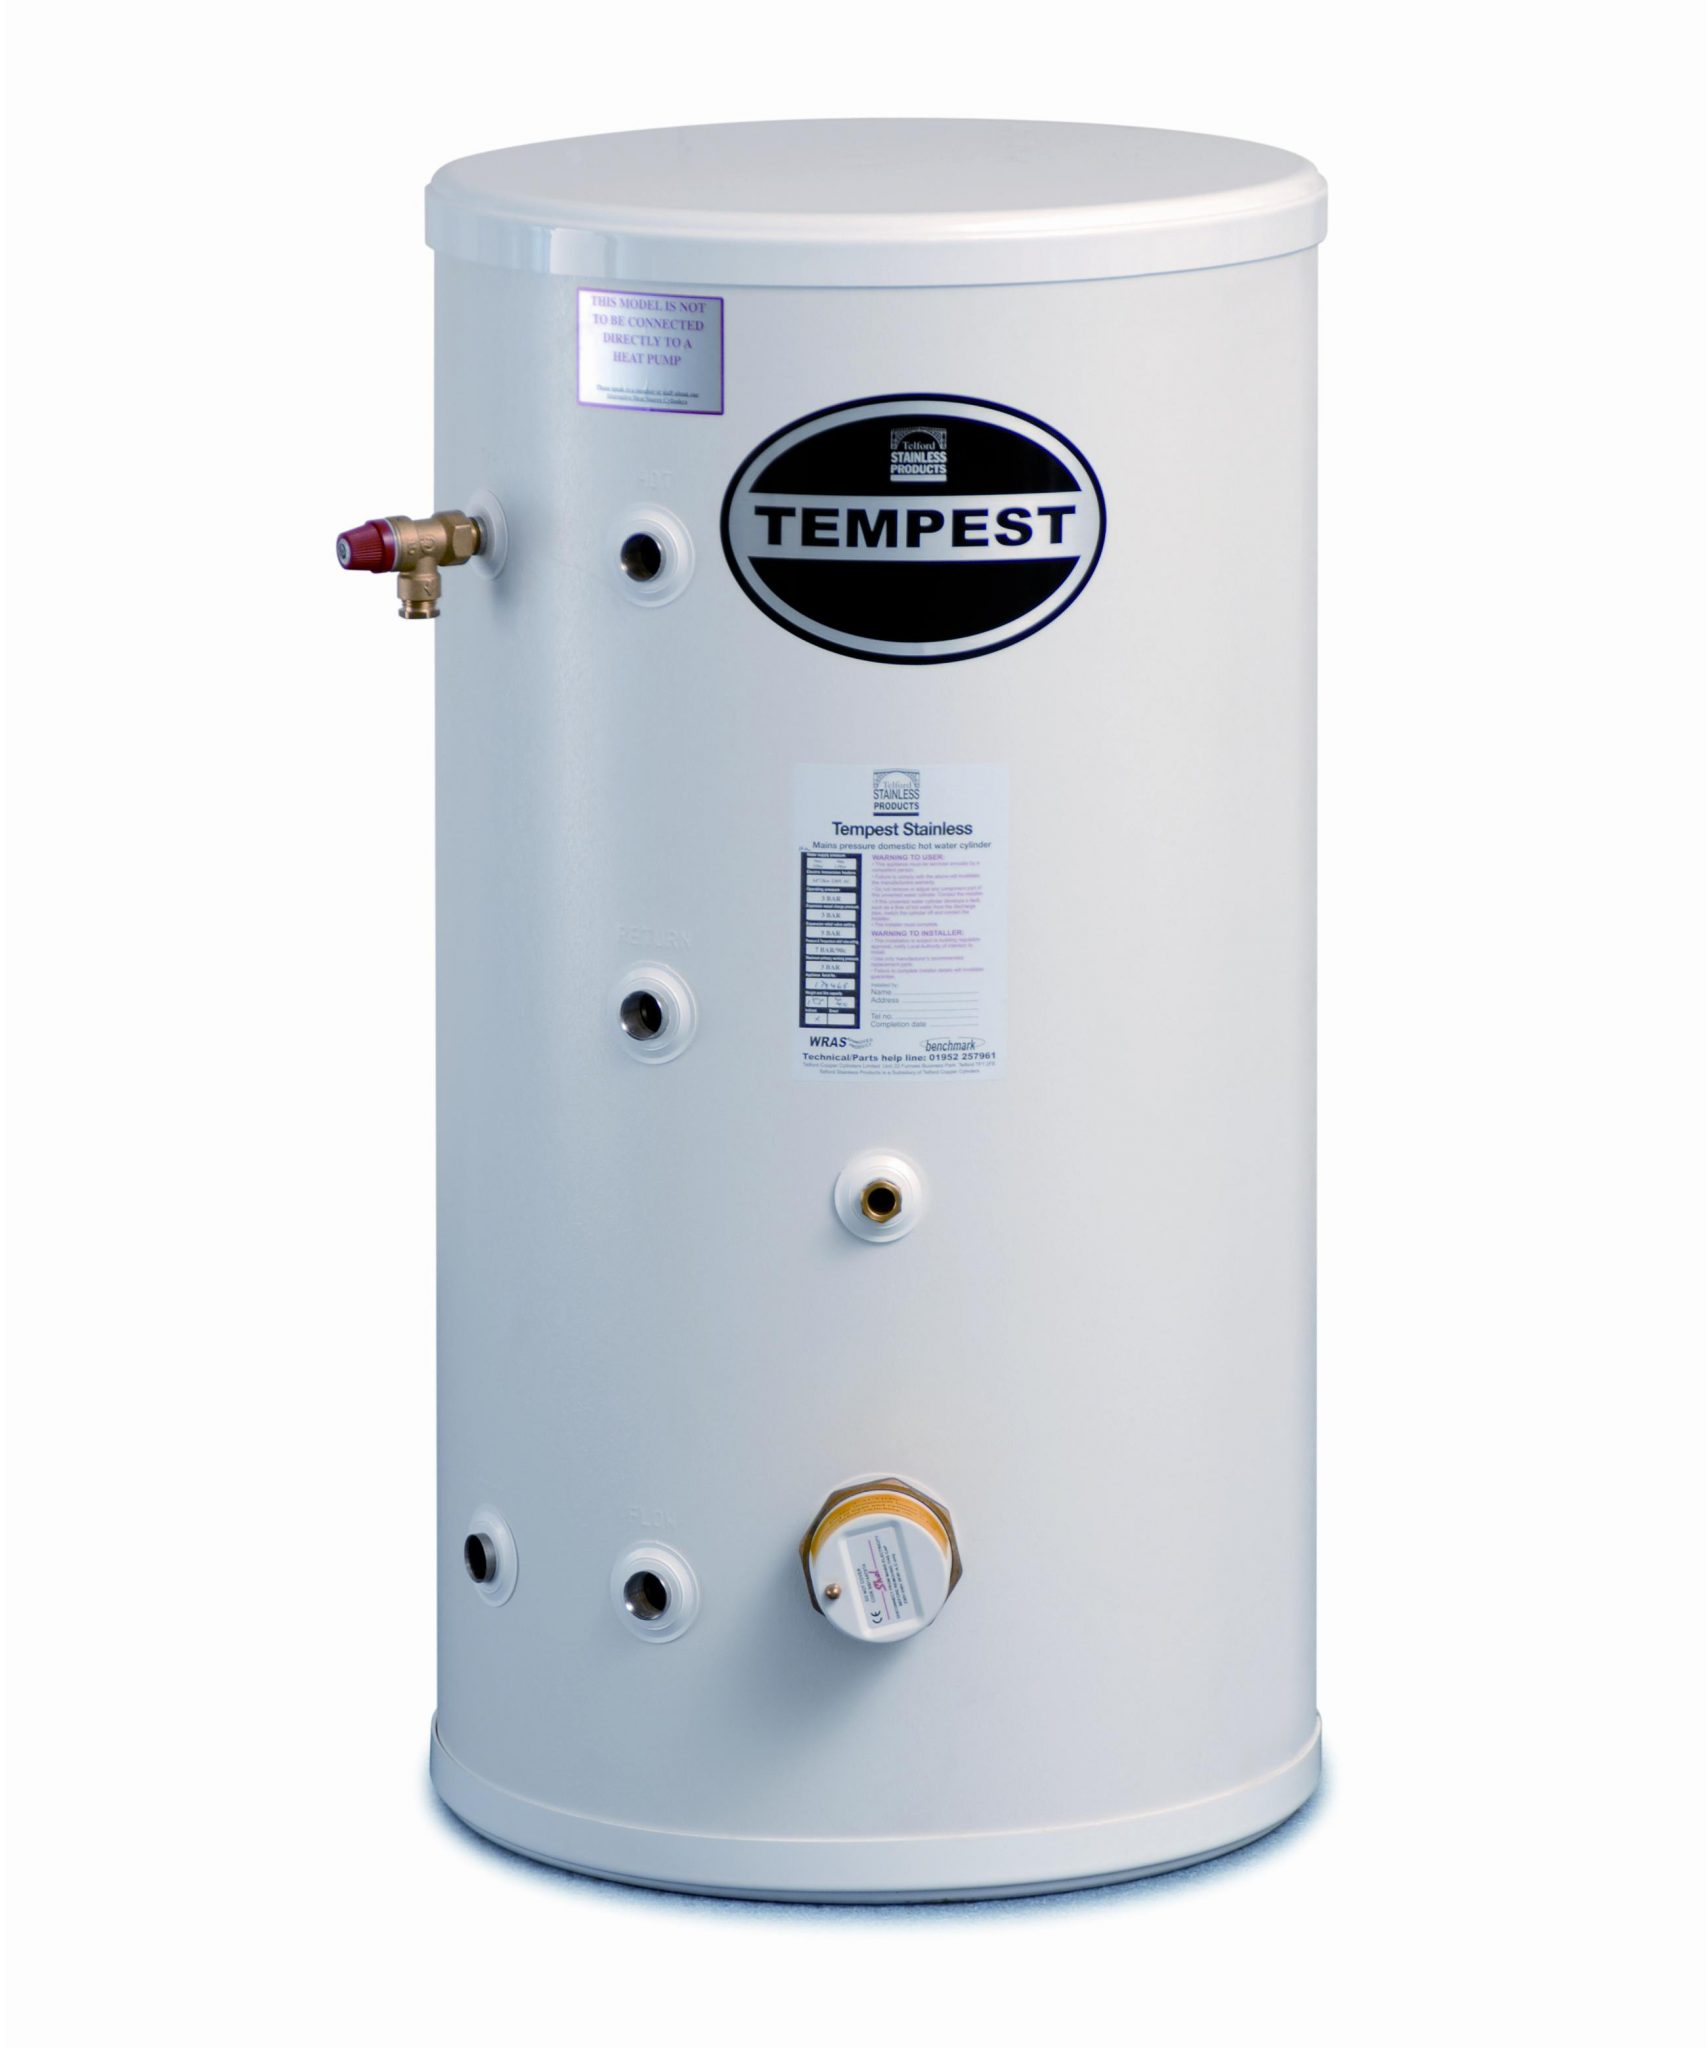 Telford Tempest Unvented Cylinder Direct - Installers Hub Online Shop